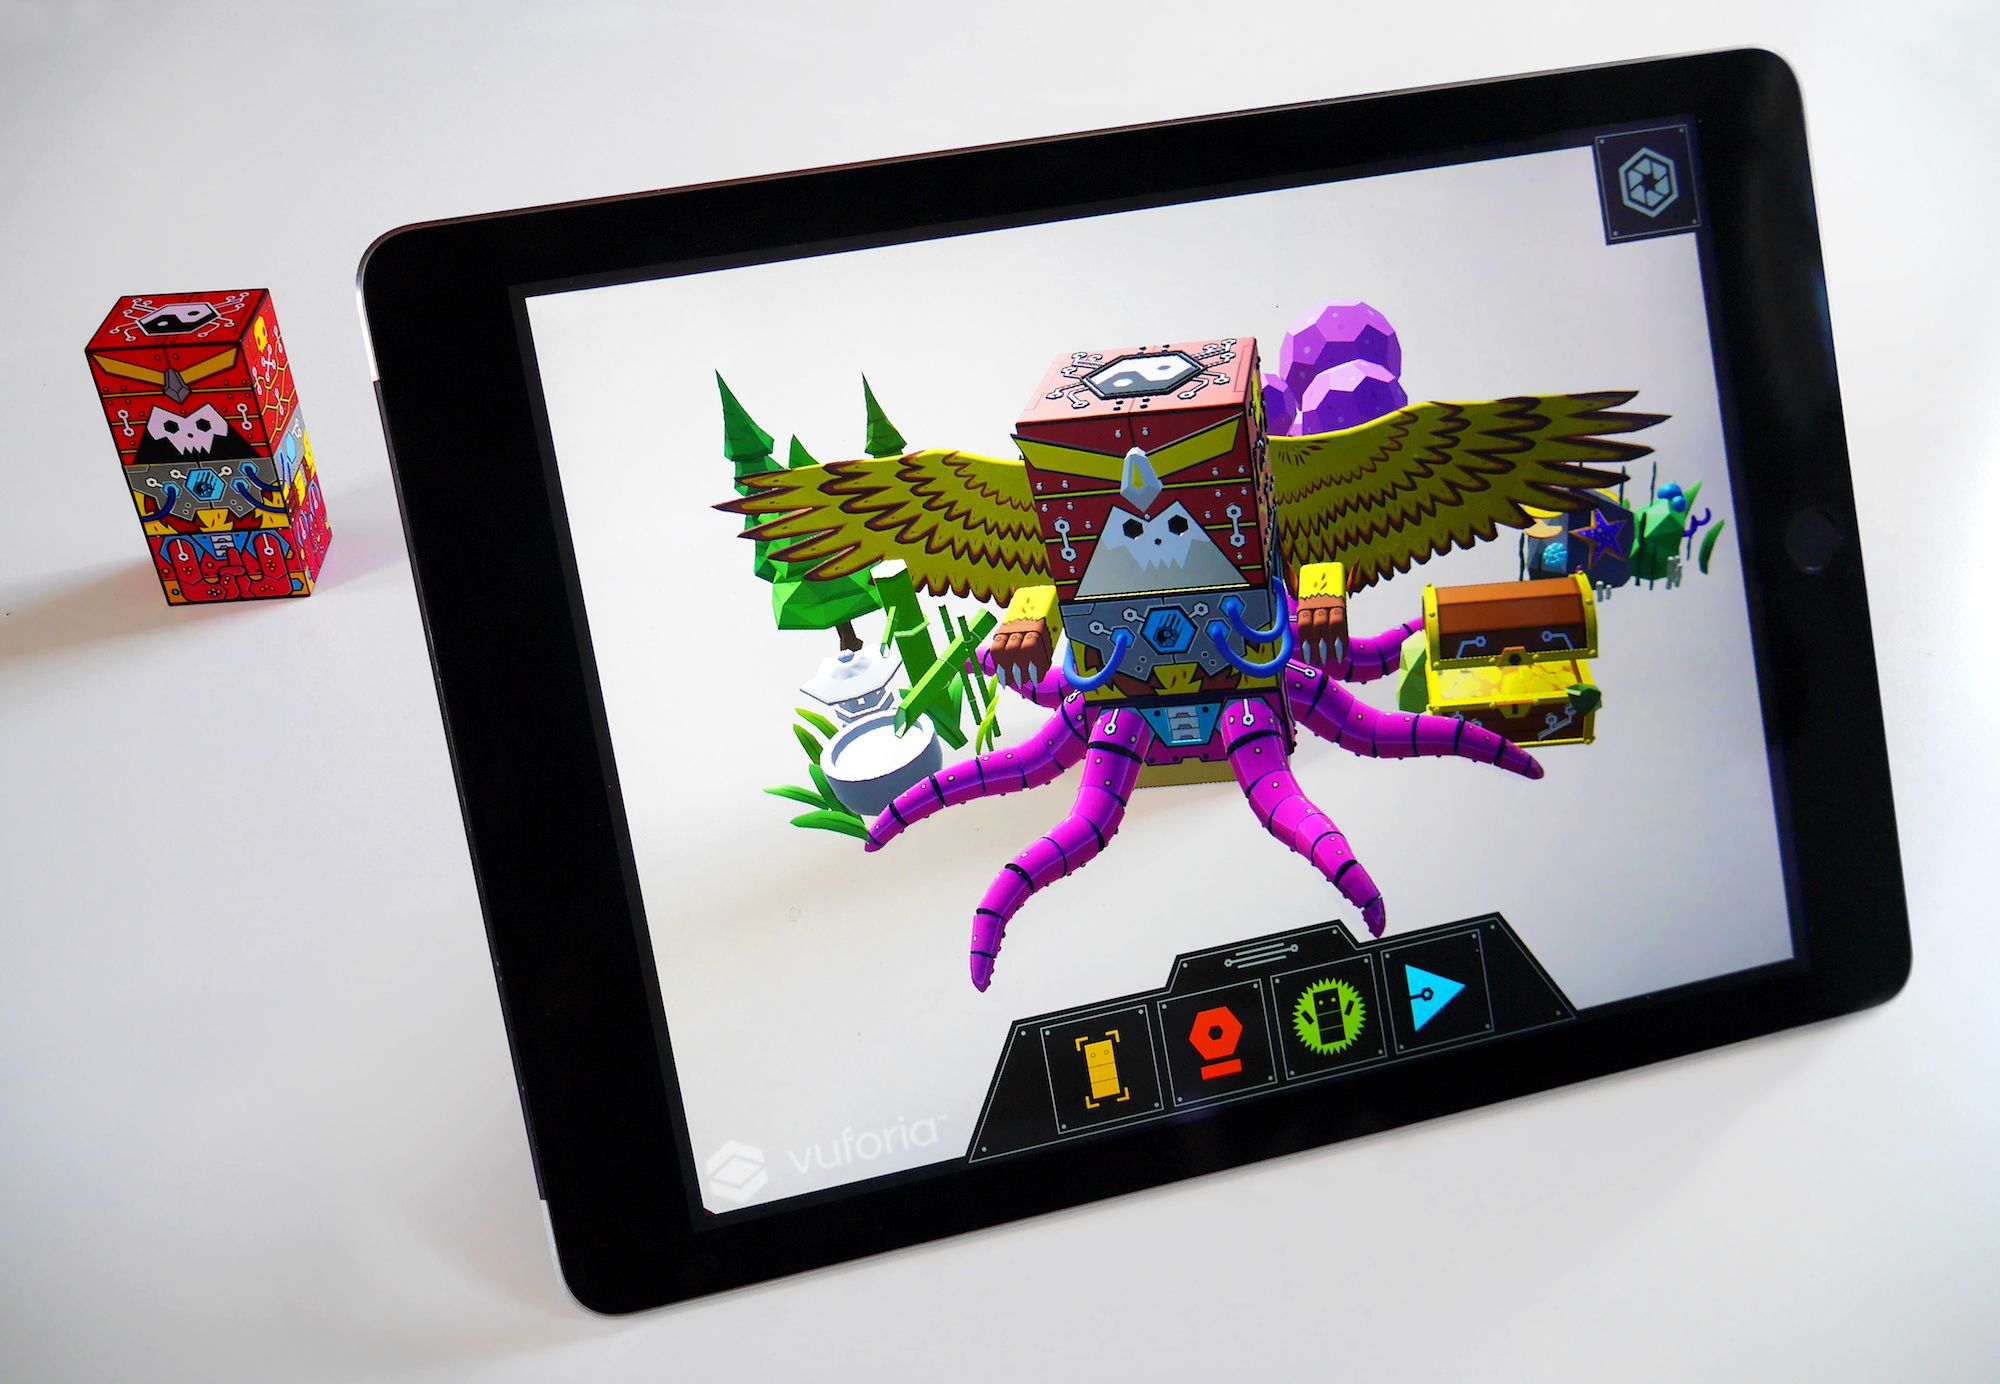 Breaking into AR with Vuforia: A Unity creator shares